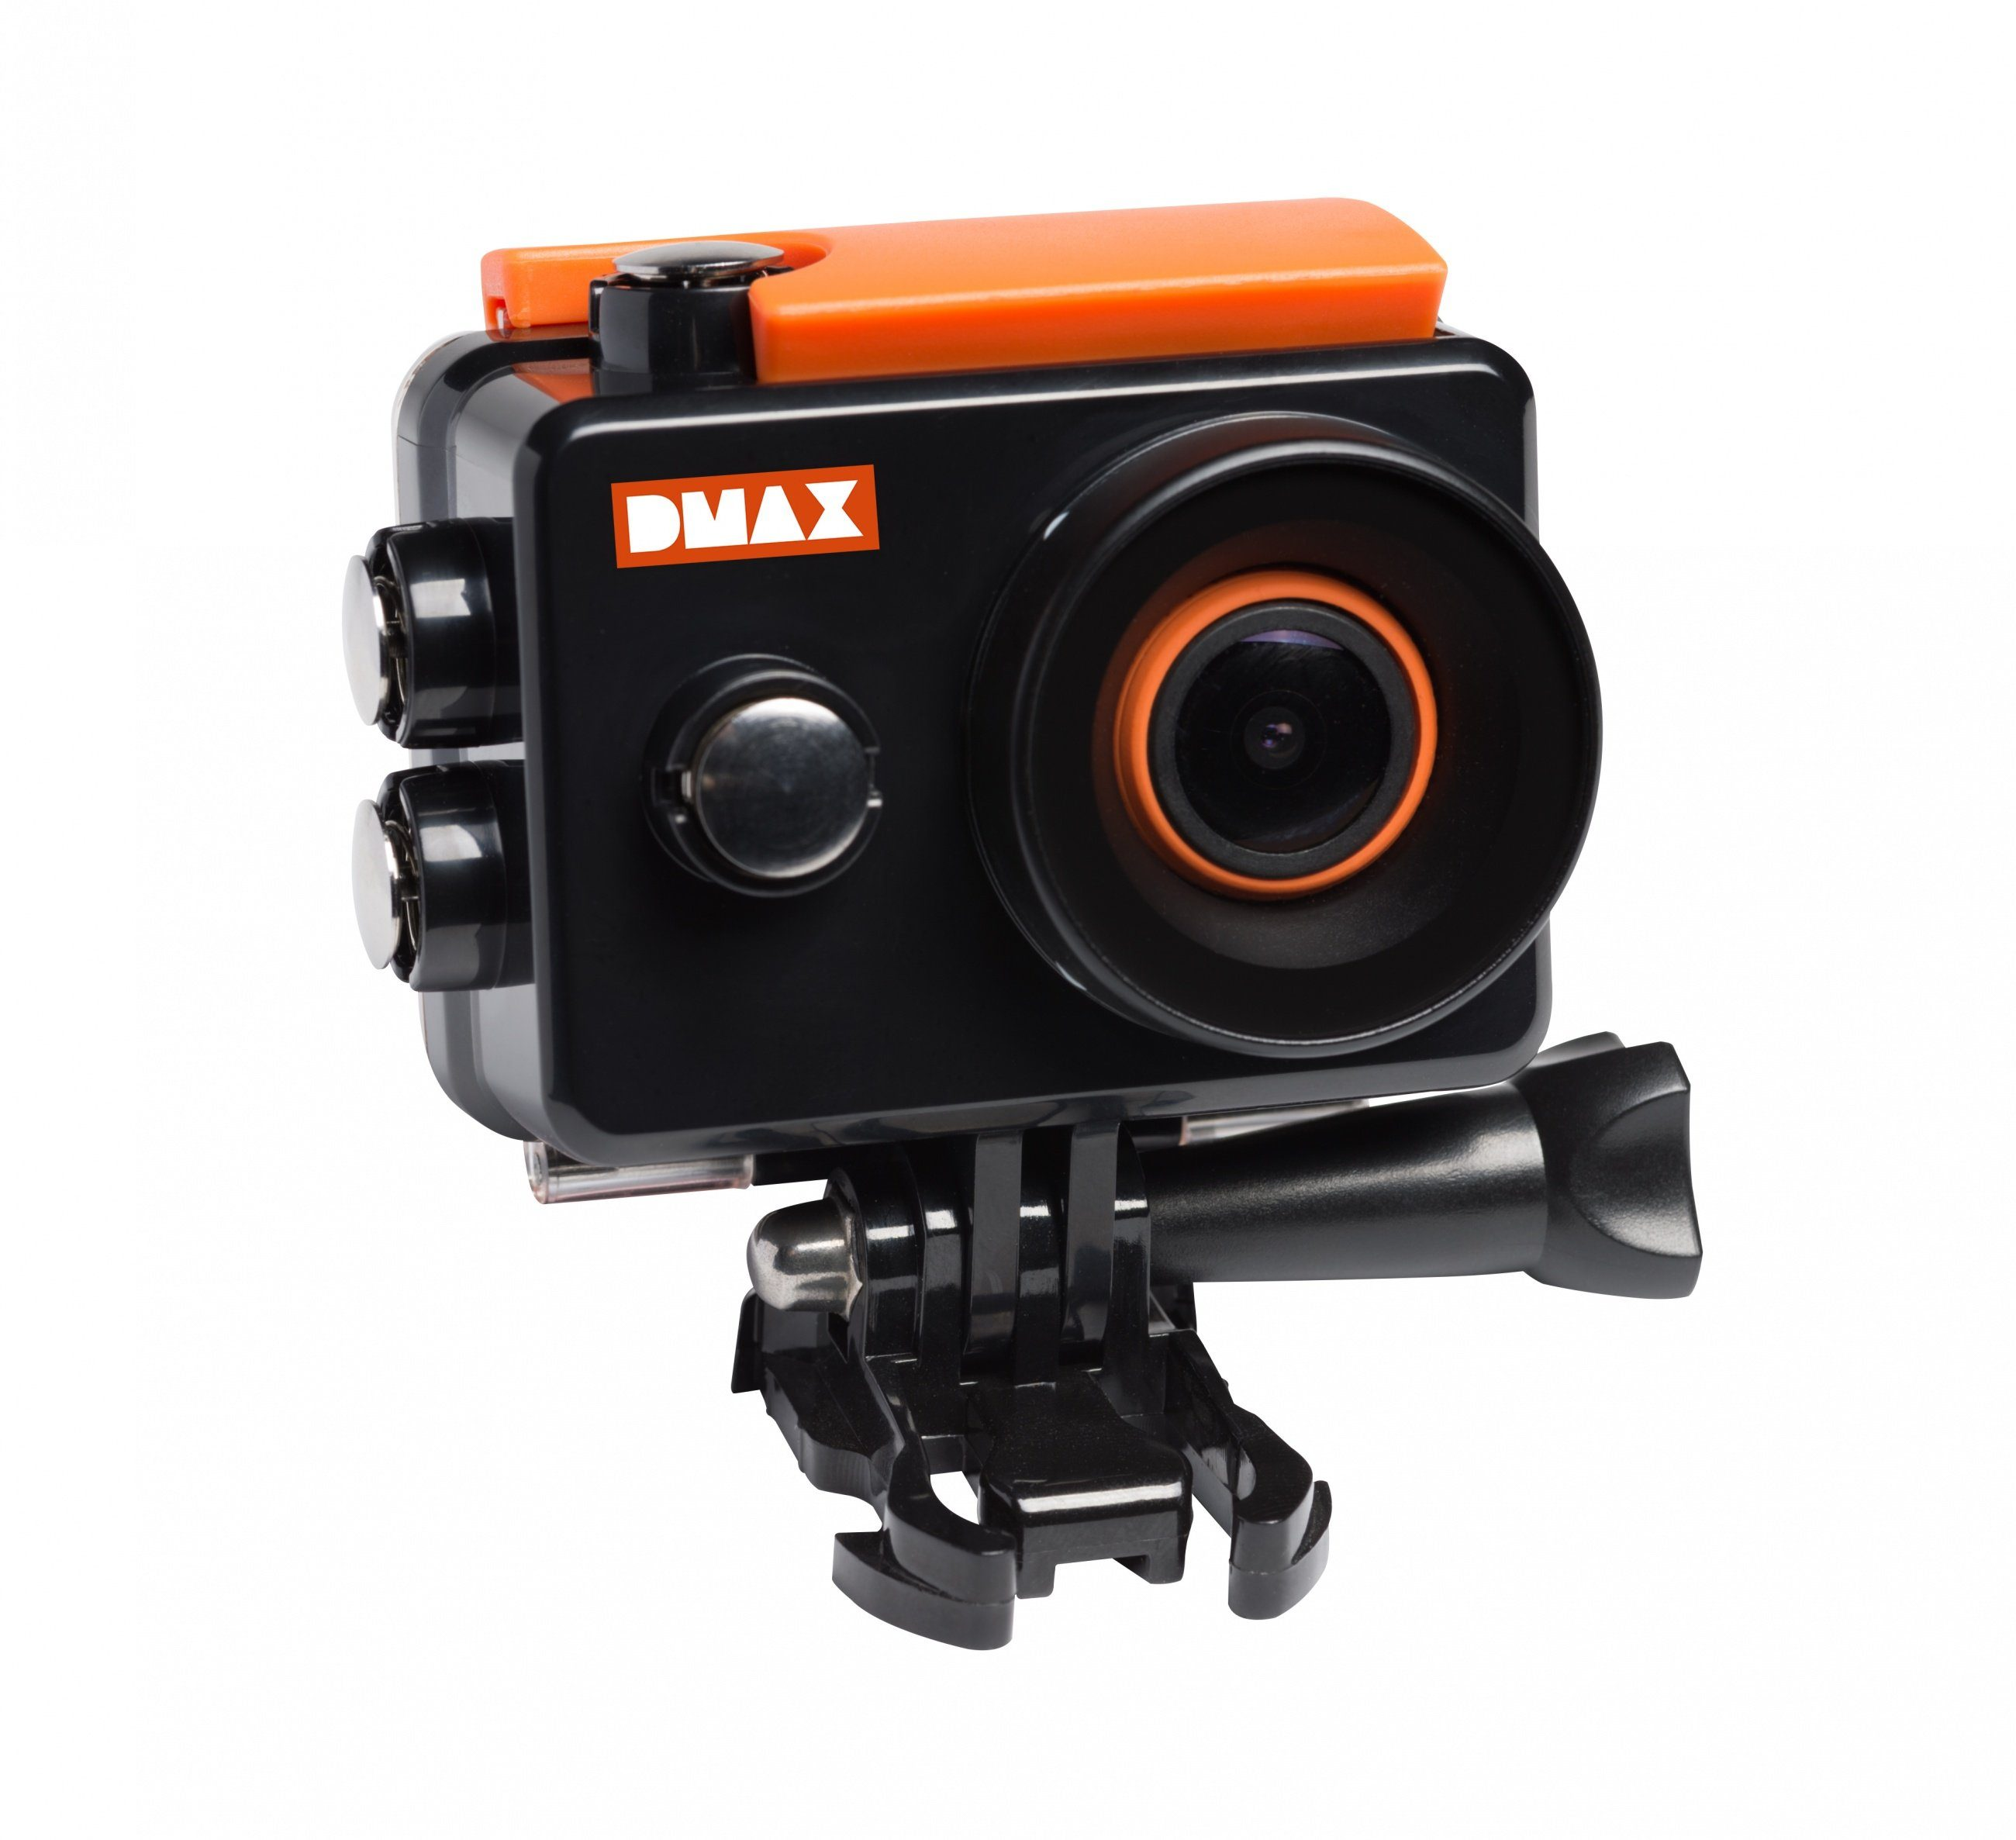 Dmax Actionkamera »1080P FHD WIFI Action Camera«